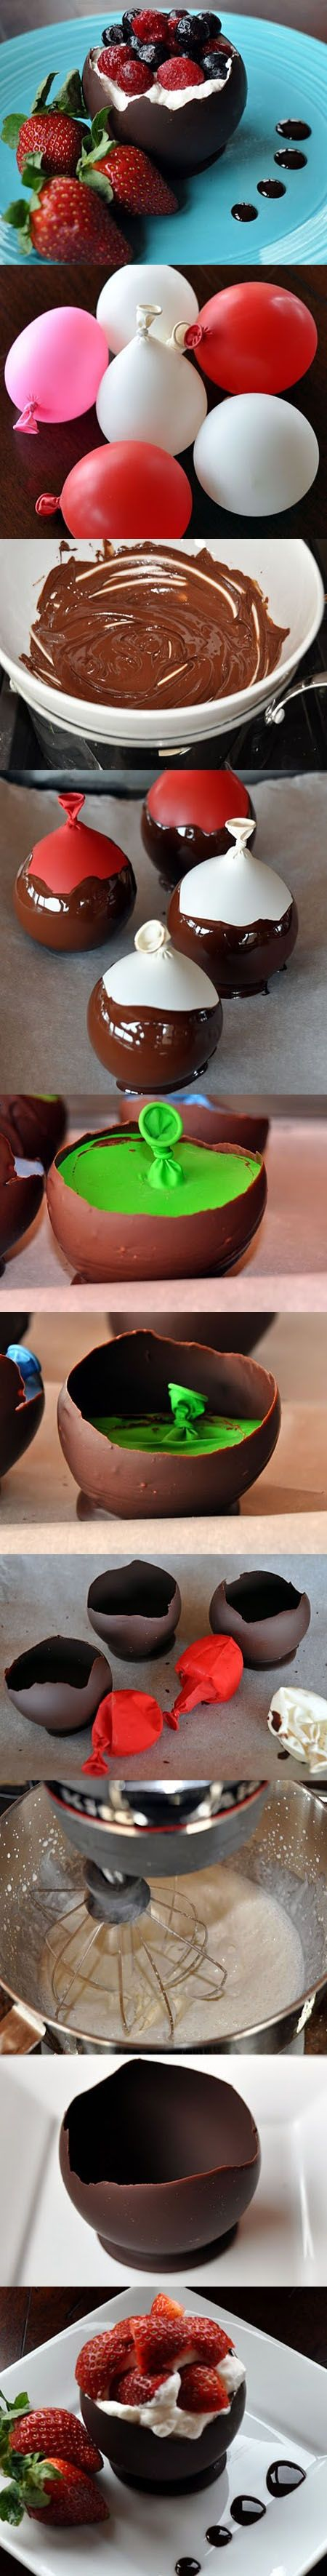 Chocolate bowl! - Inspiring picture on Joyzz.com